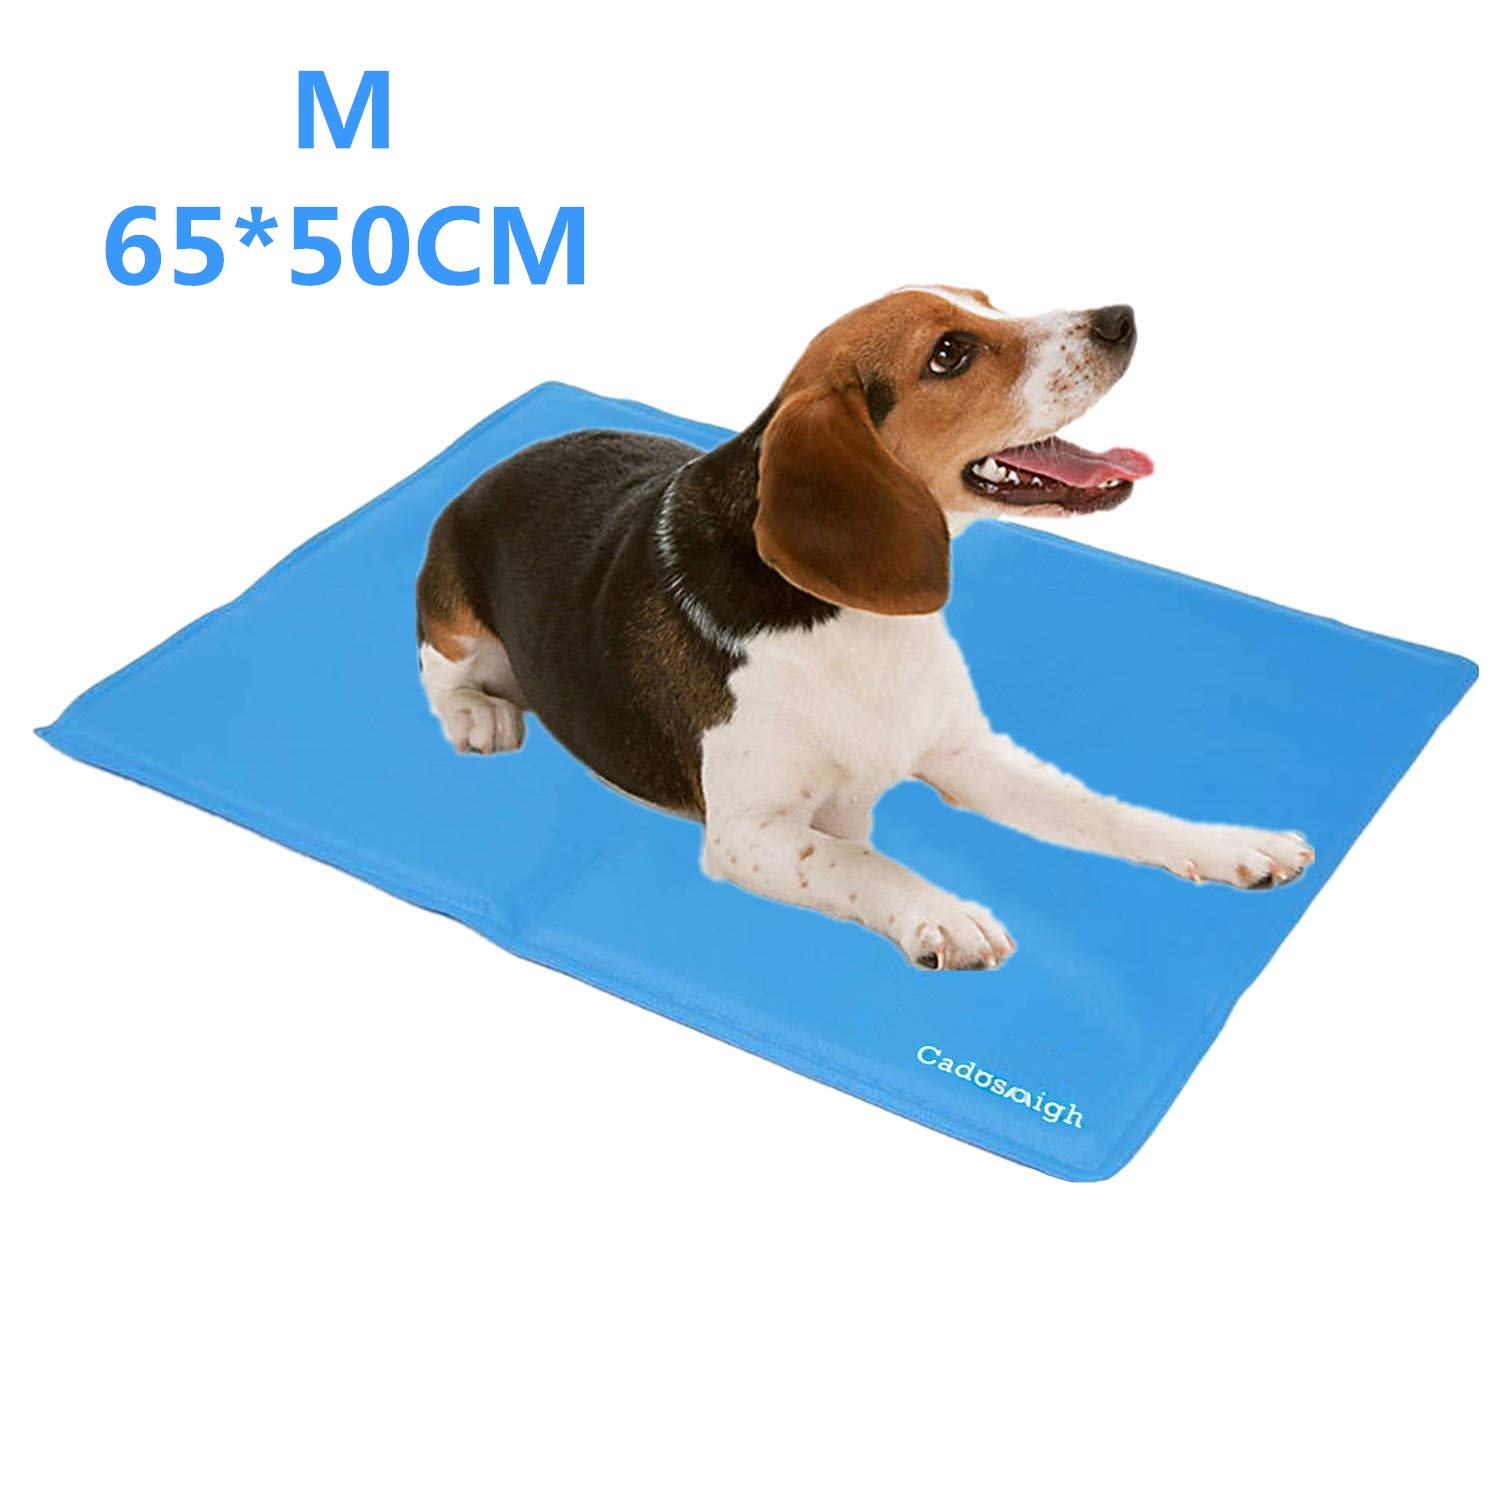 Cadosoigh Dog Cooling Mat 90x50cm Durable Pet Cool Mat Non Toxic Gel Self Cooling Pad Great For Dogs Cats In Hot Summer Sky Blue 65 50cm